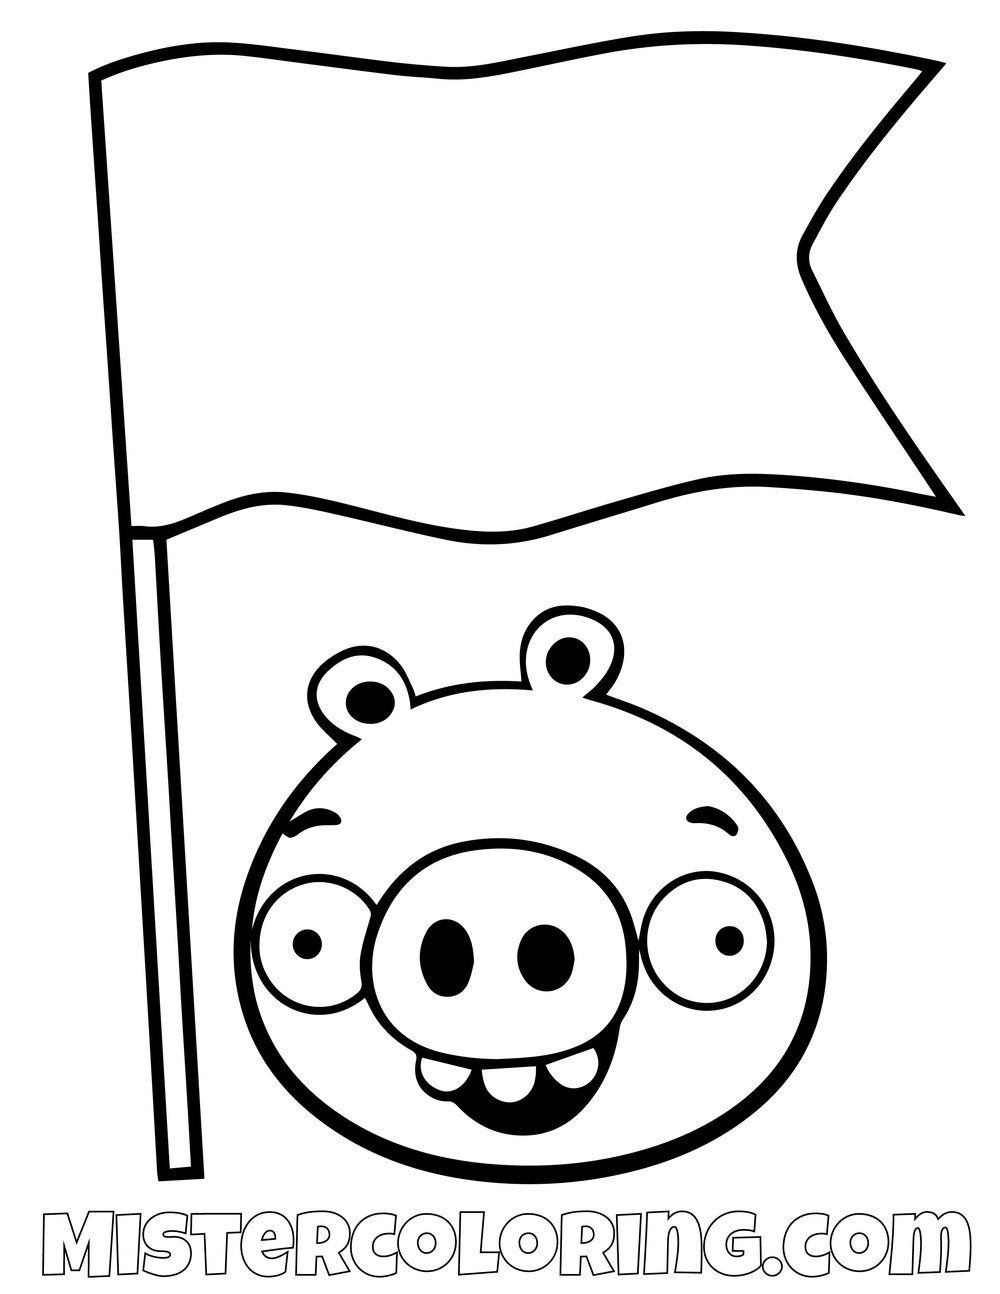 Angry Bird Coloring Pages Printable Angry Birds Coloring Pages For Kids Mister Coloring In 2020 Bird Coloring Pages Cinderella Coloring Pages Angry Birds Pigs